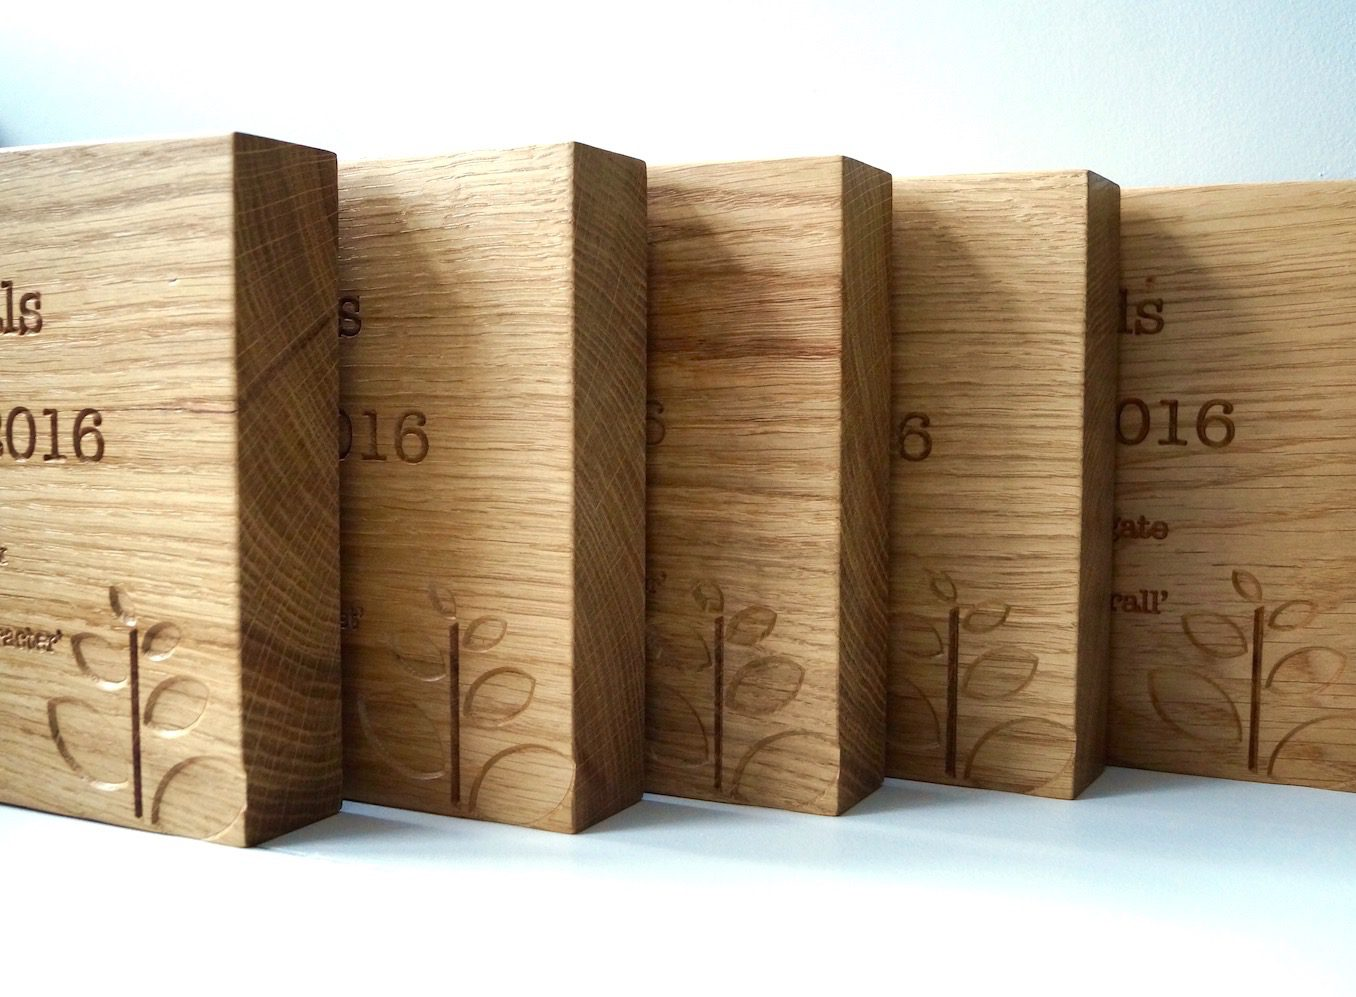 dorset-cereals-engraved-wooden-plaques-makemesomethingspecial.com